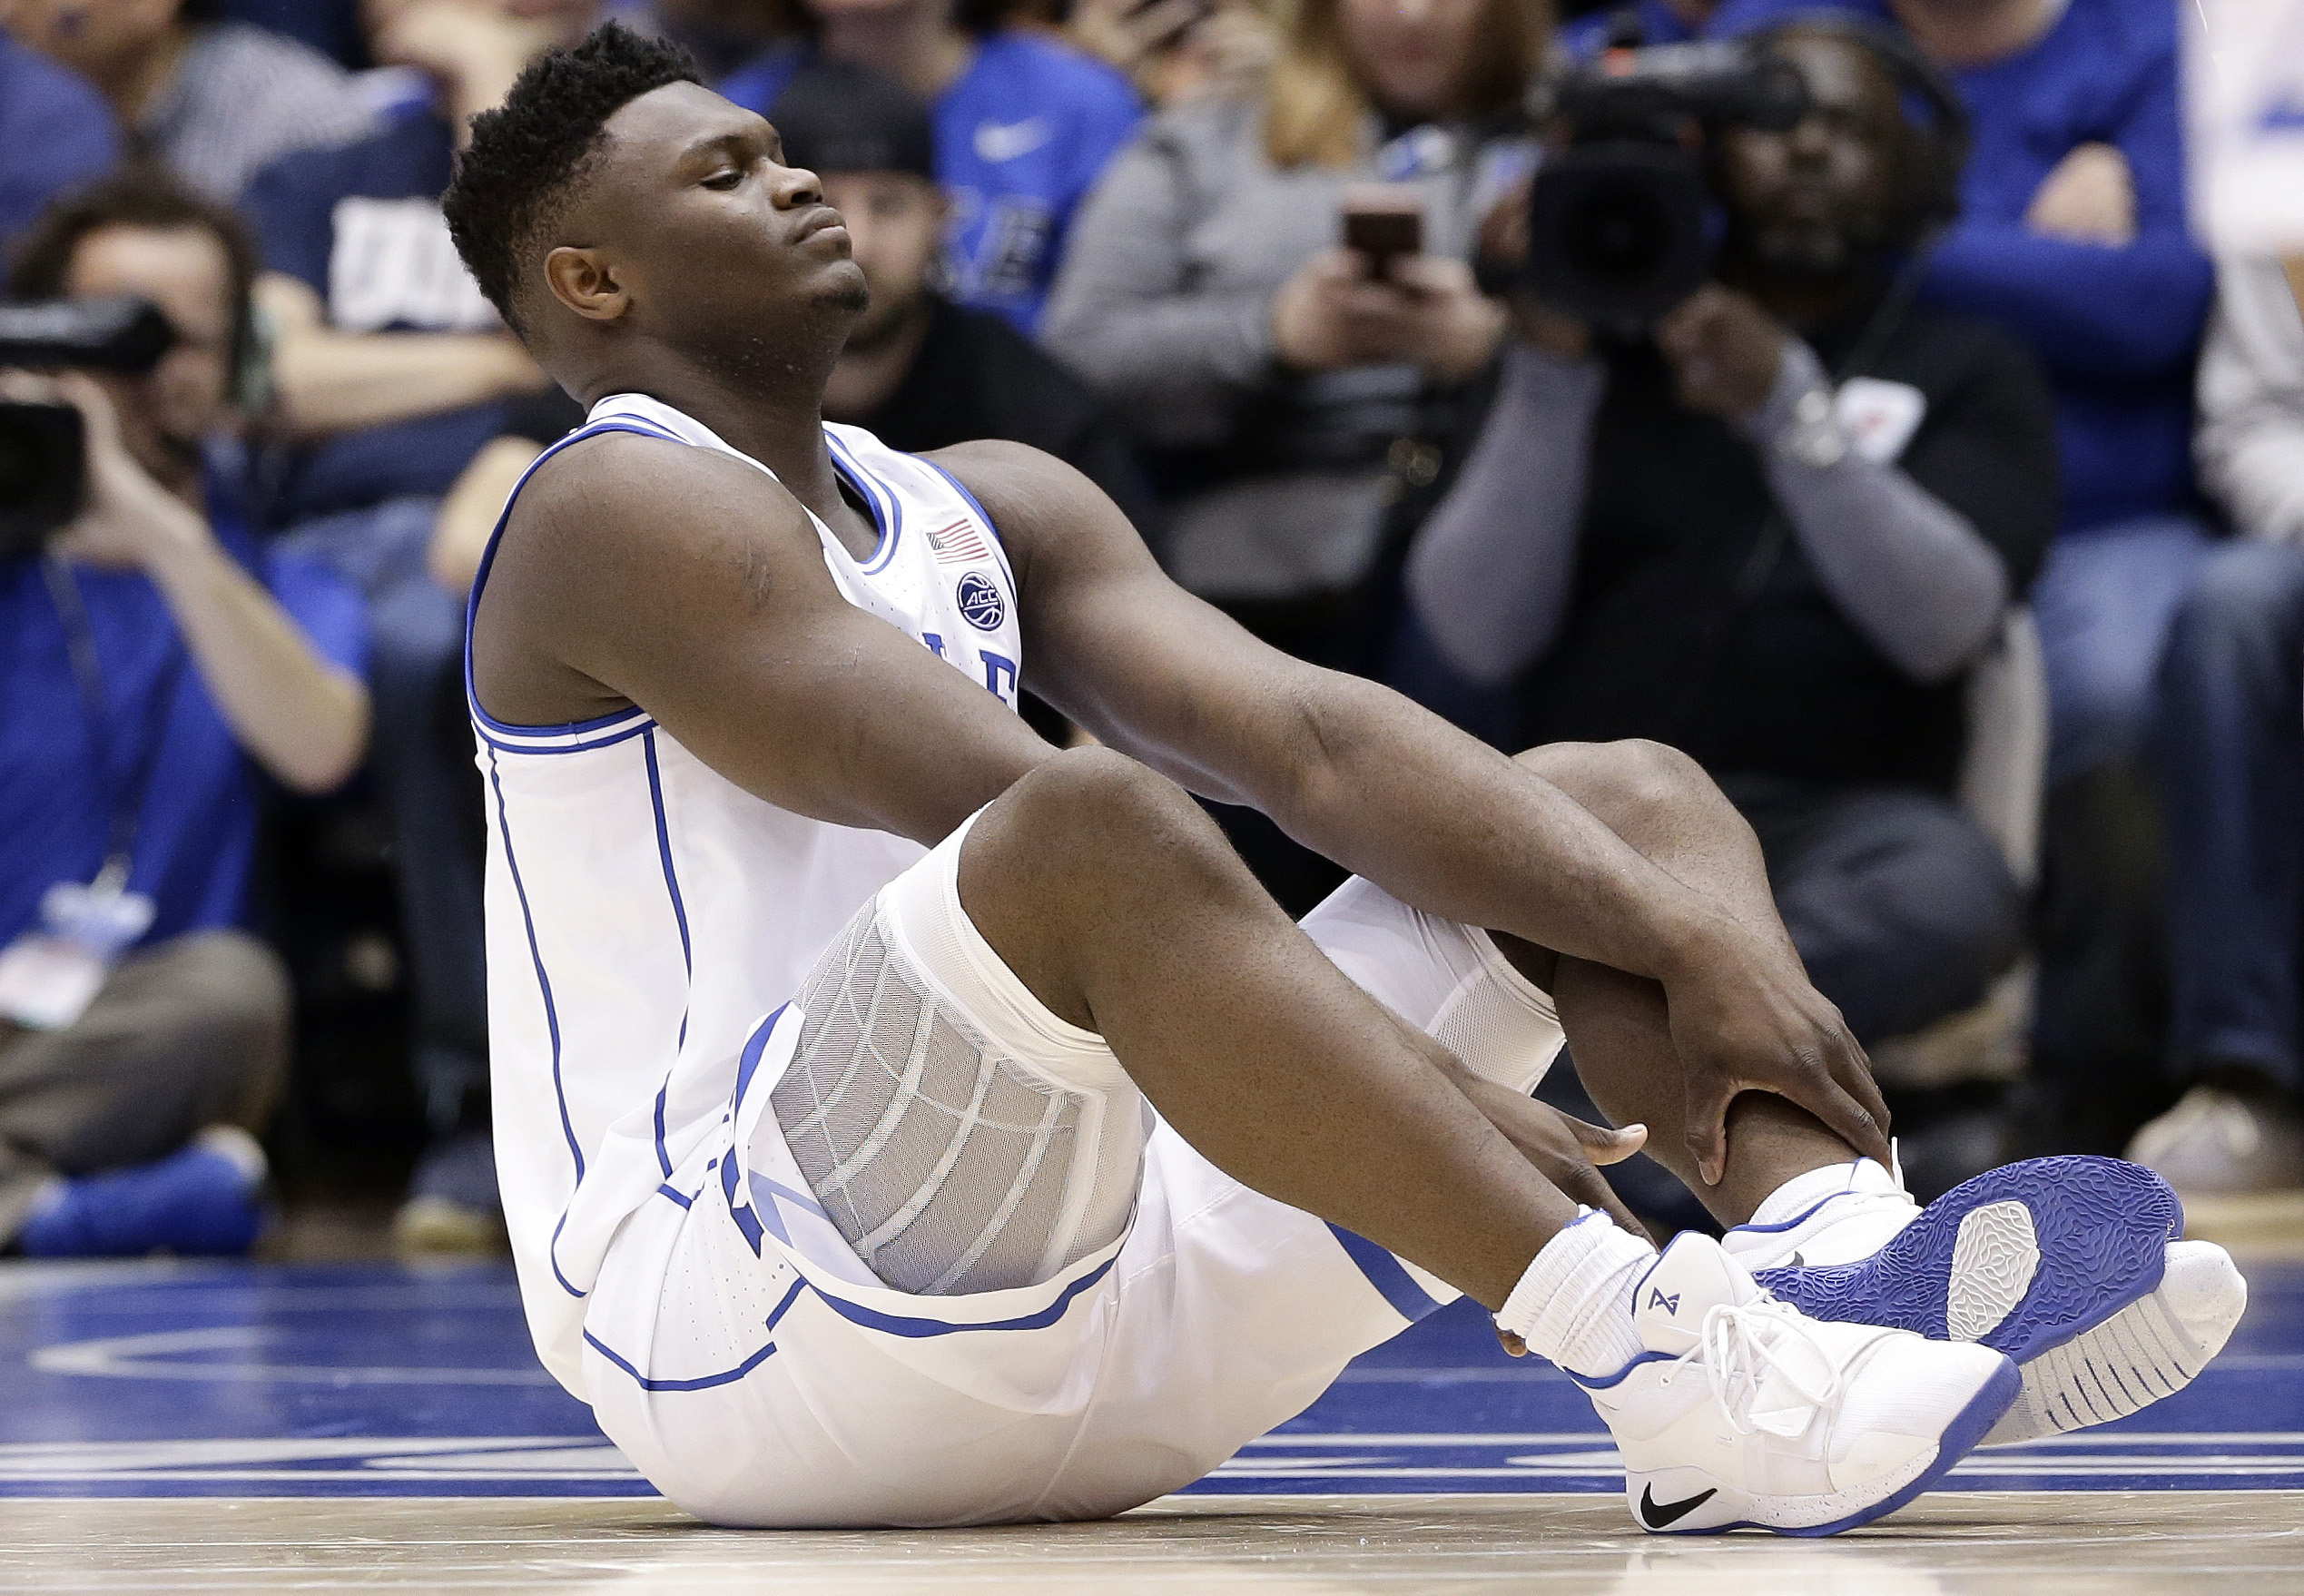 College Basketball Star's Busted Shoe